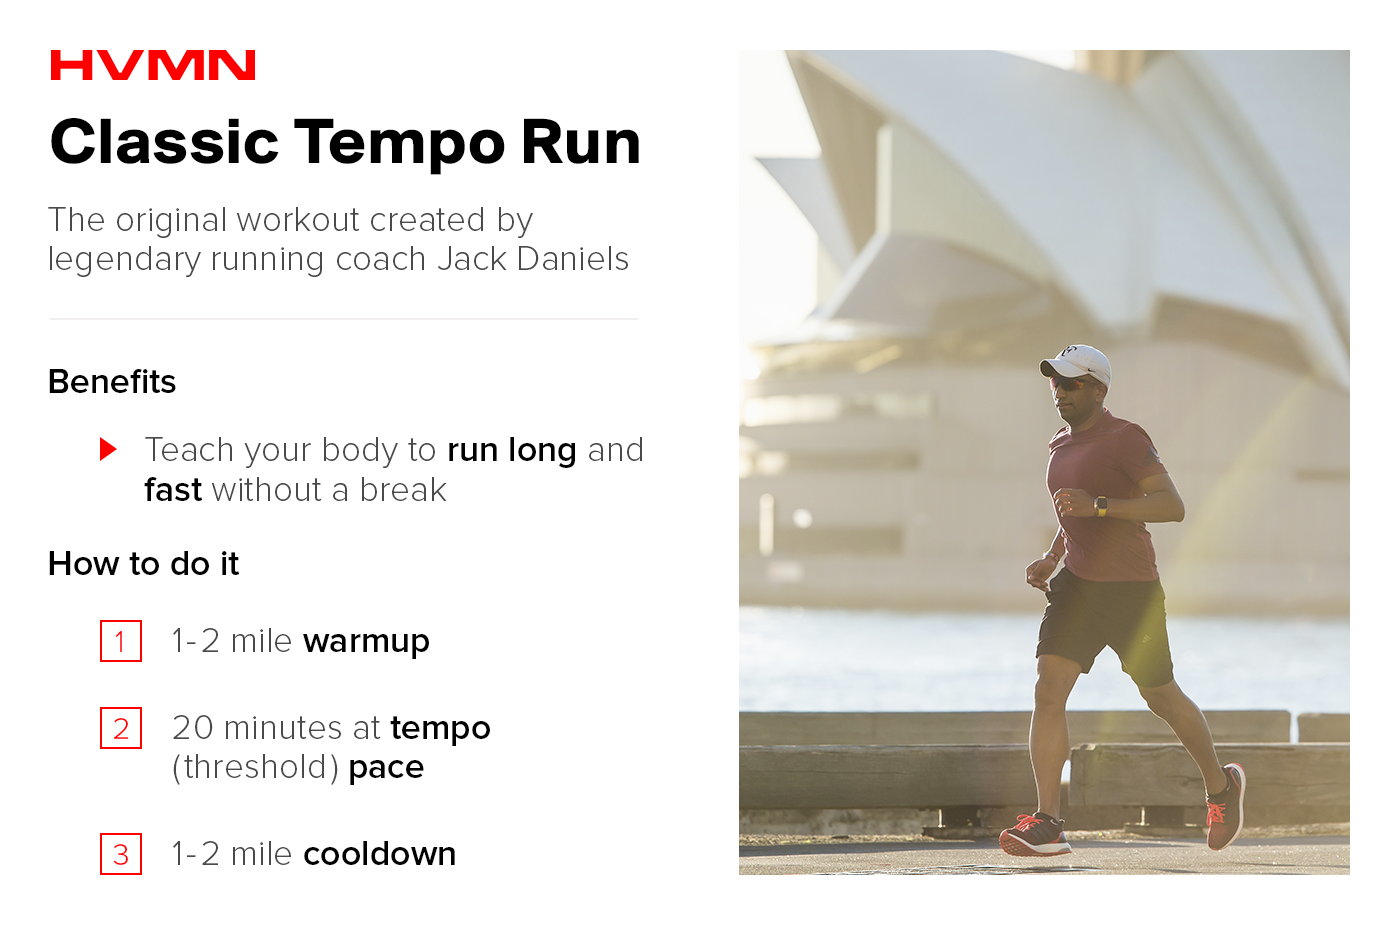 "There is a man in this image wearing a hat and sunglasses. He is running on the sidewalk along the water. The image describes the benefits of a classic tempo run, and how to perform this workout. The benefits of a classic tempo run are that it teaches your body to run long and fast without a break. The ""How to do it"" section gives instructions. Number 1. Do a 1 - 2 mile warmup. Number 2. Do 20 minutes at a tempo (or threshold) pace. And number 3. Do a 1-2 mile cooldown."